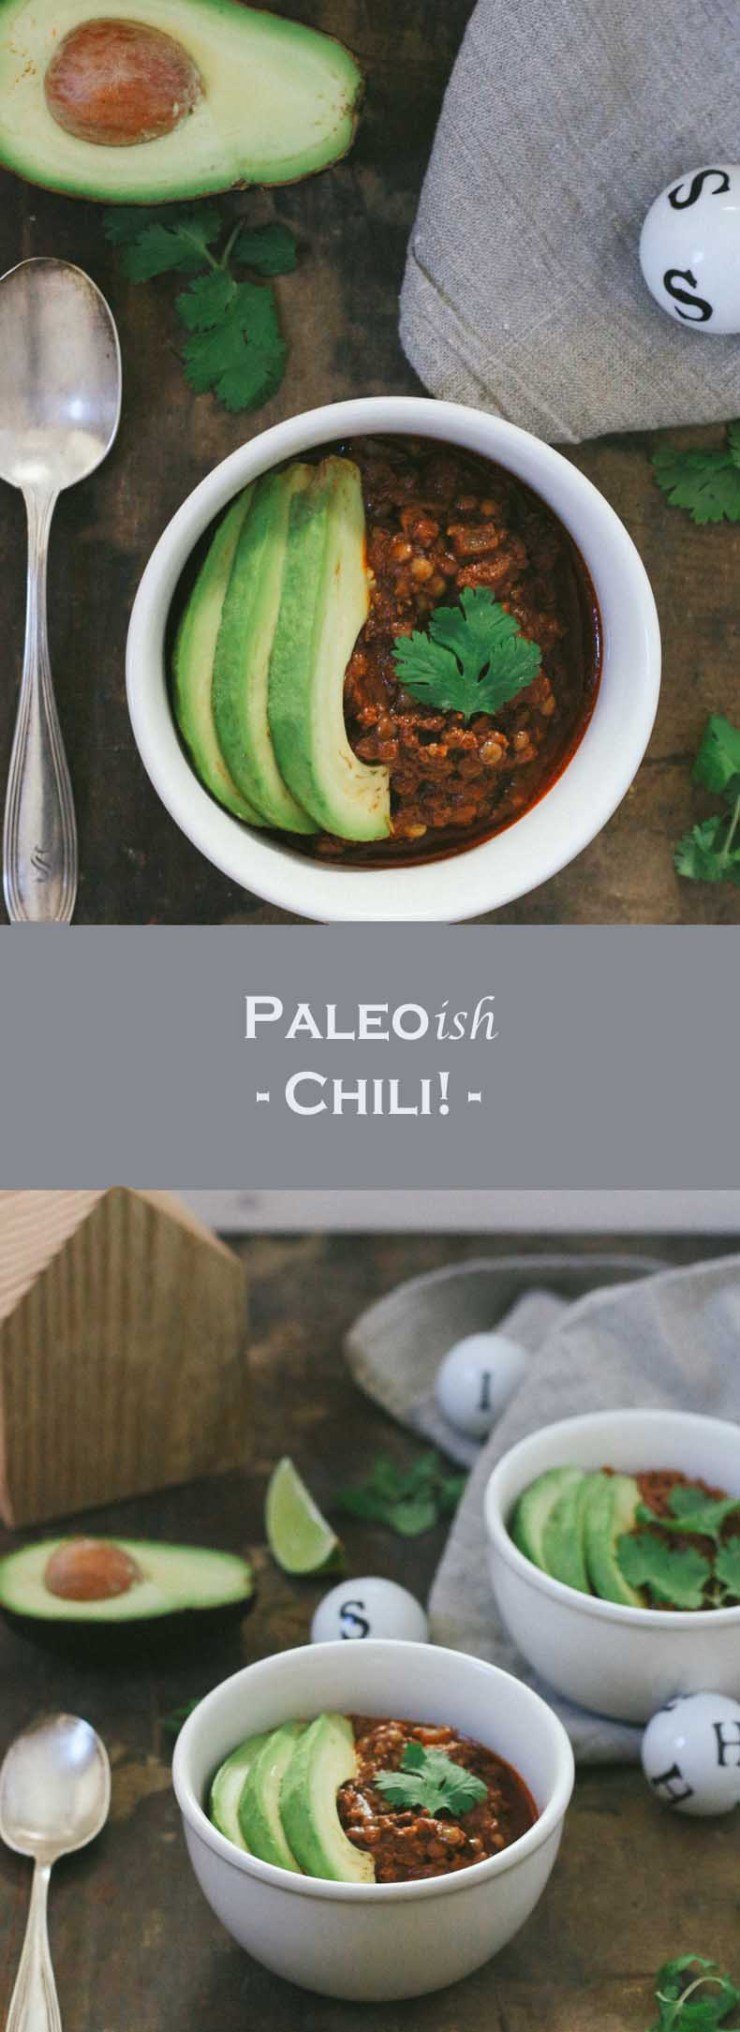 Deliciously warm and comforting Paleo-ish Chili that is easy-to-make! Perfect for the darkest and dreariest days of winter!